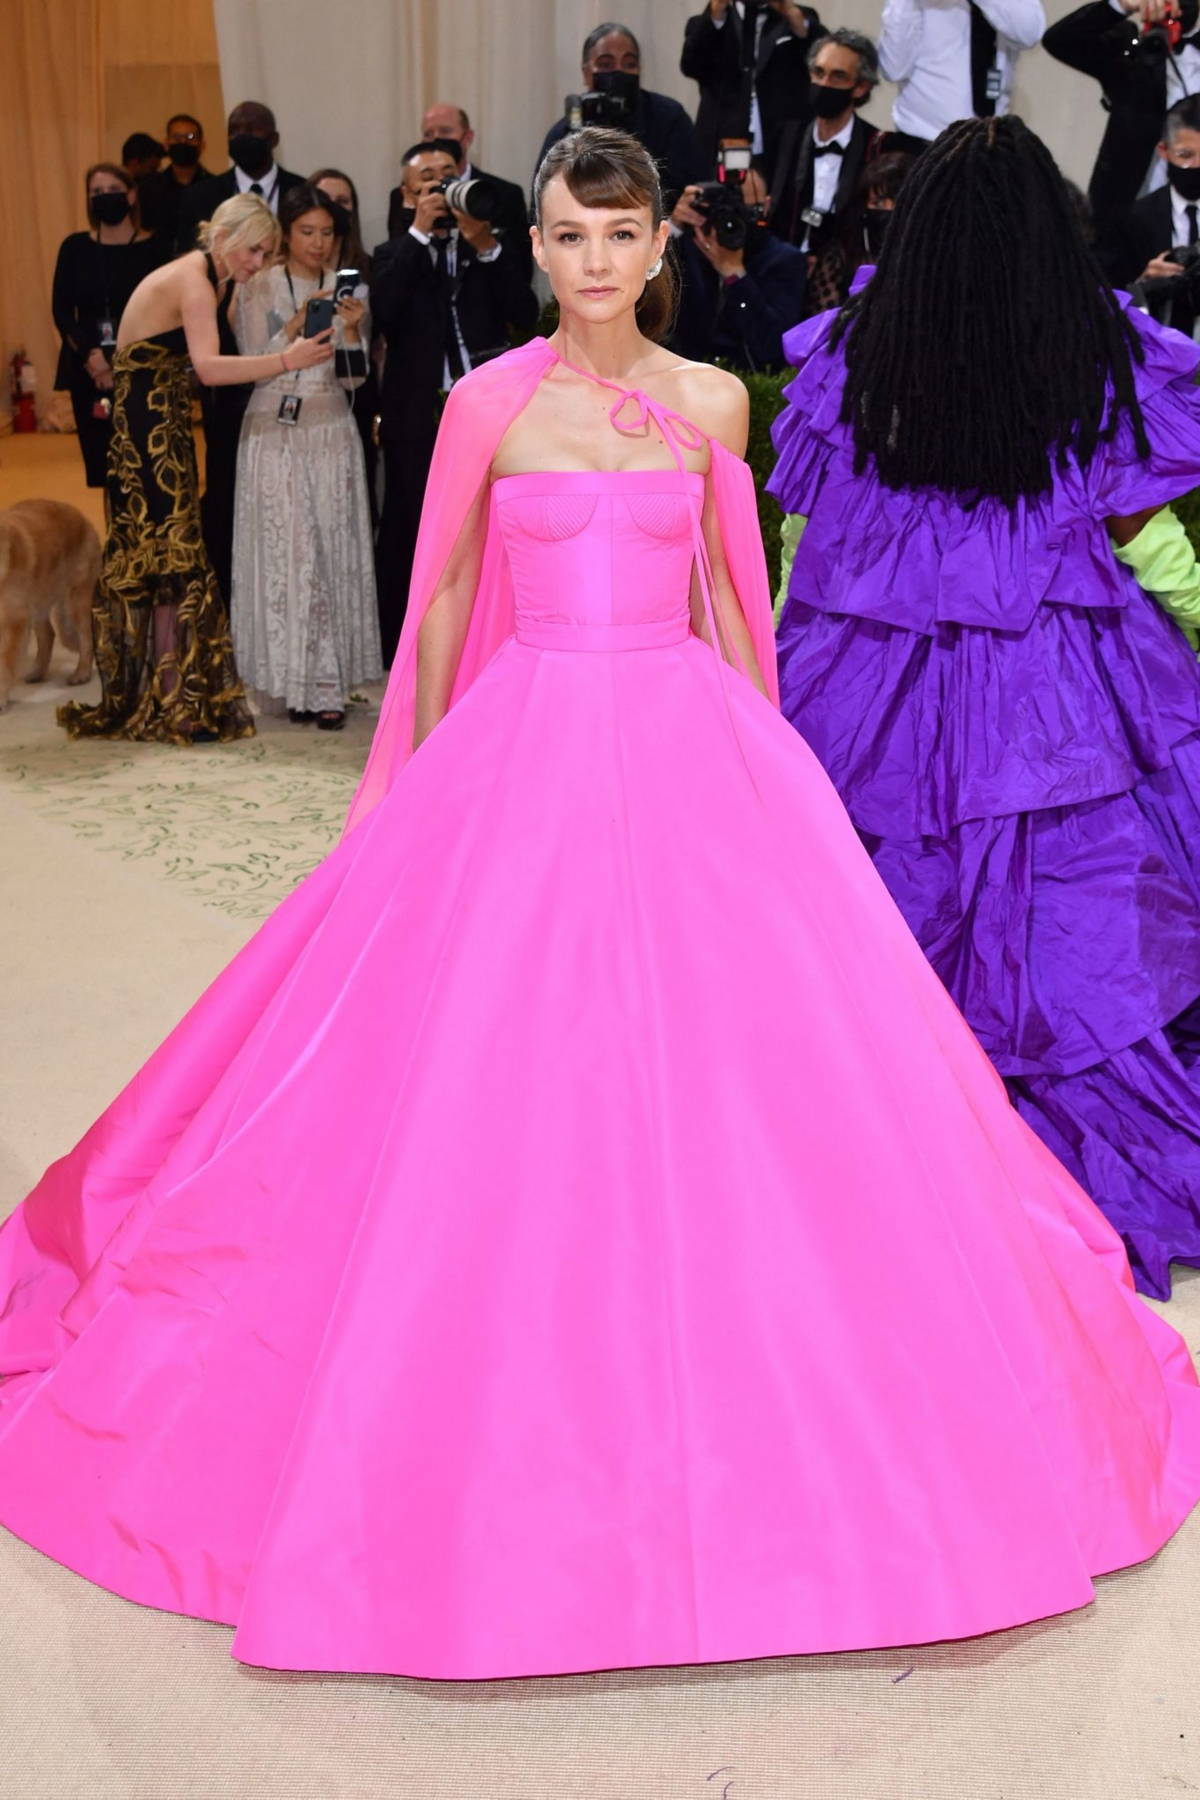 Carey Mulligan attends The Met Gala Celebrating In America: A Lexicon Of Fashion at Metropolitan Museum of Art in New York City